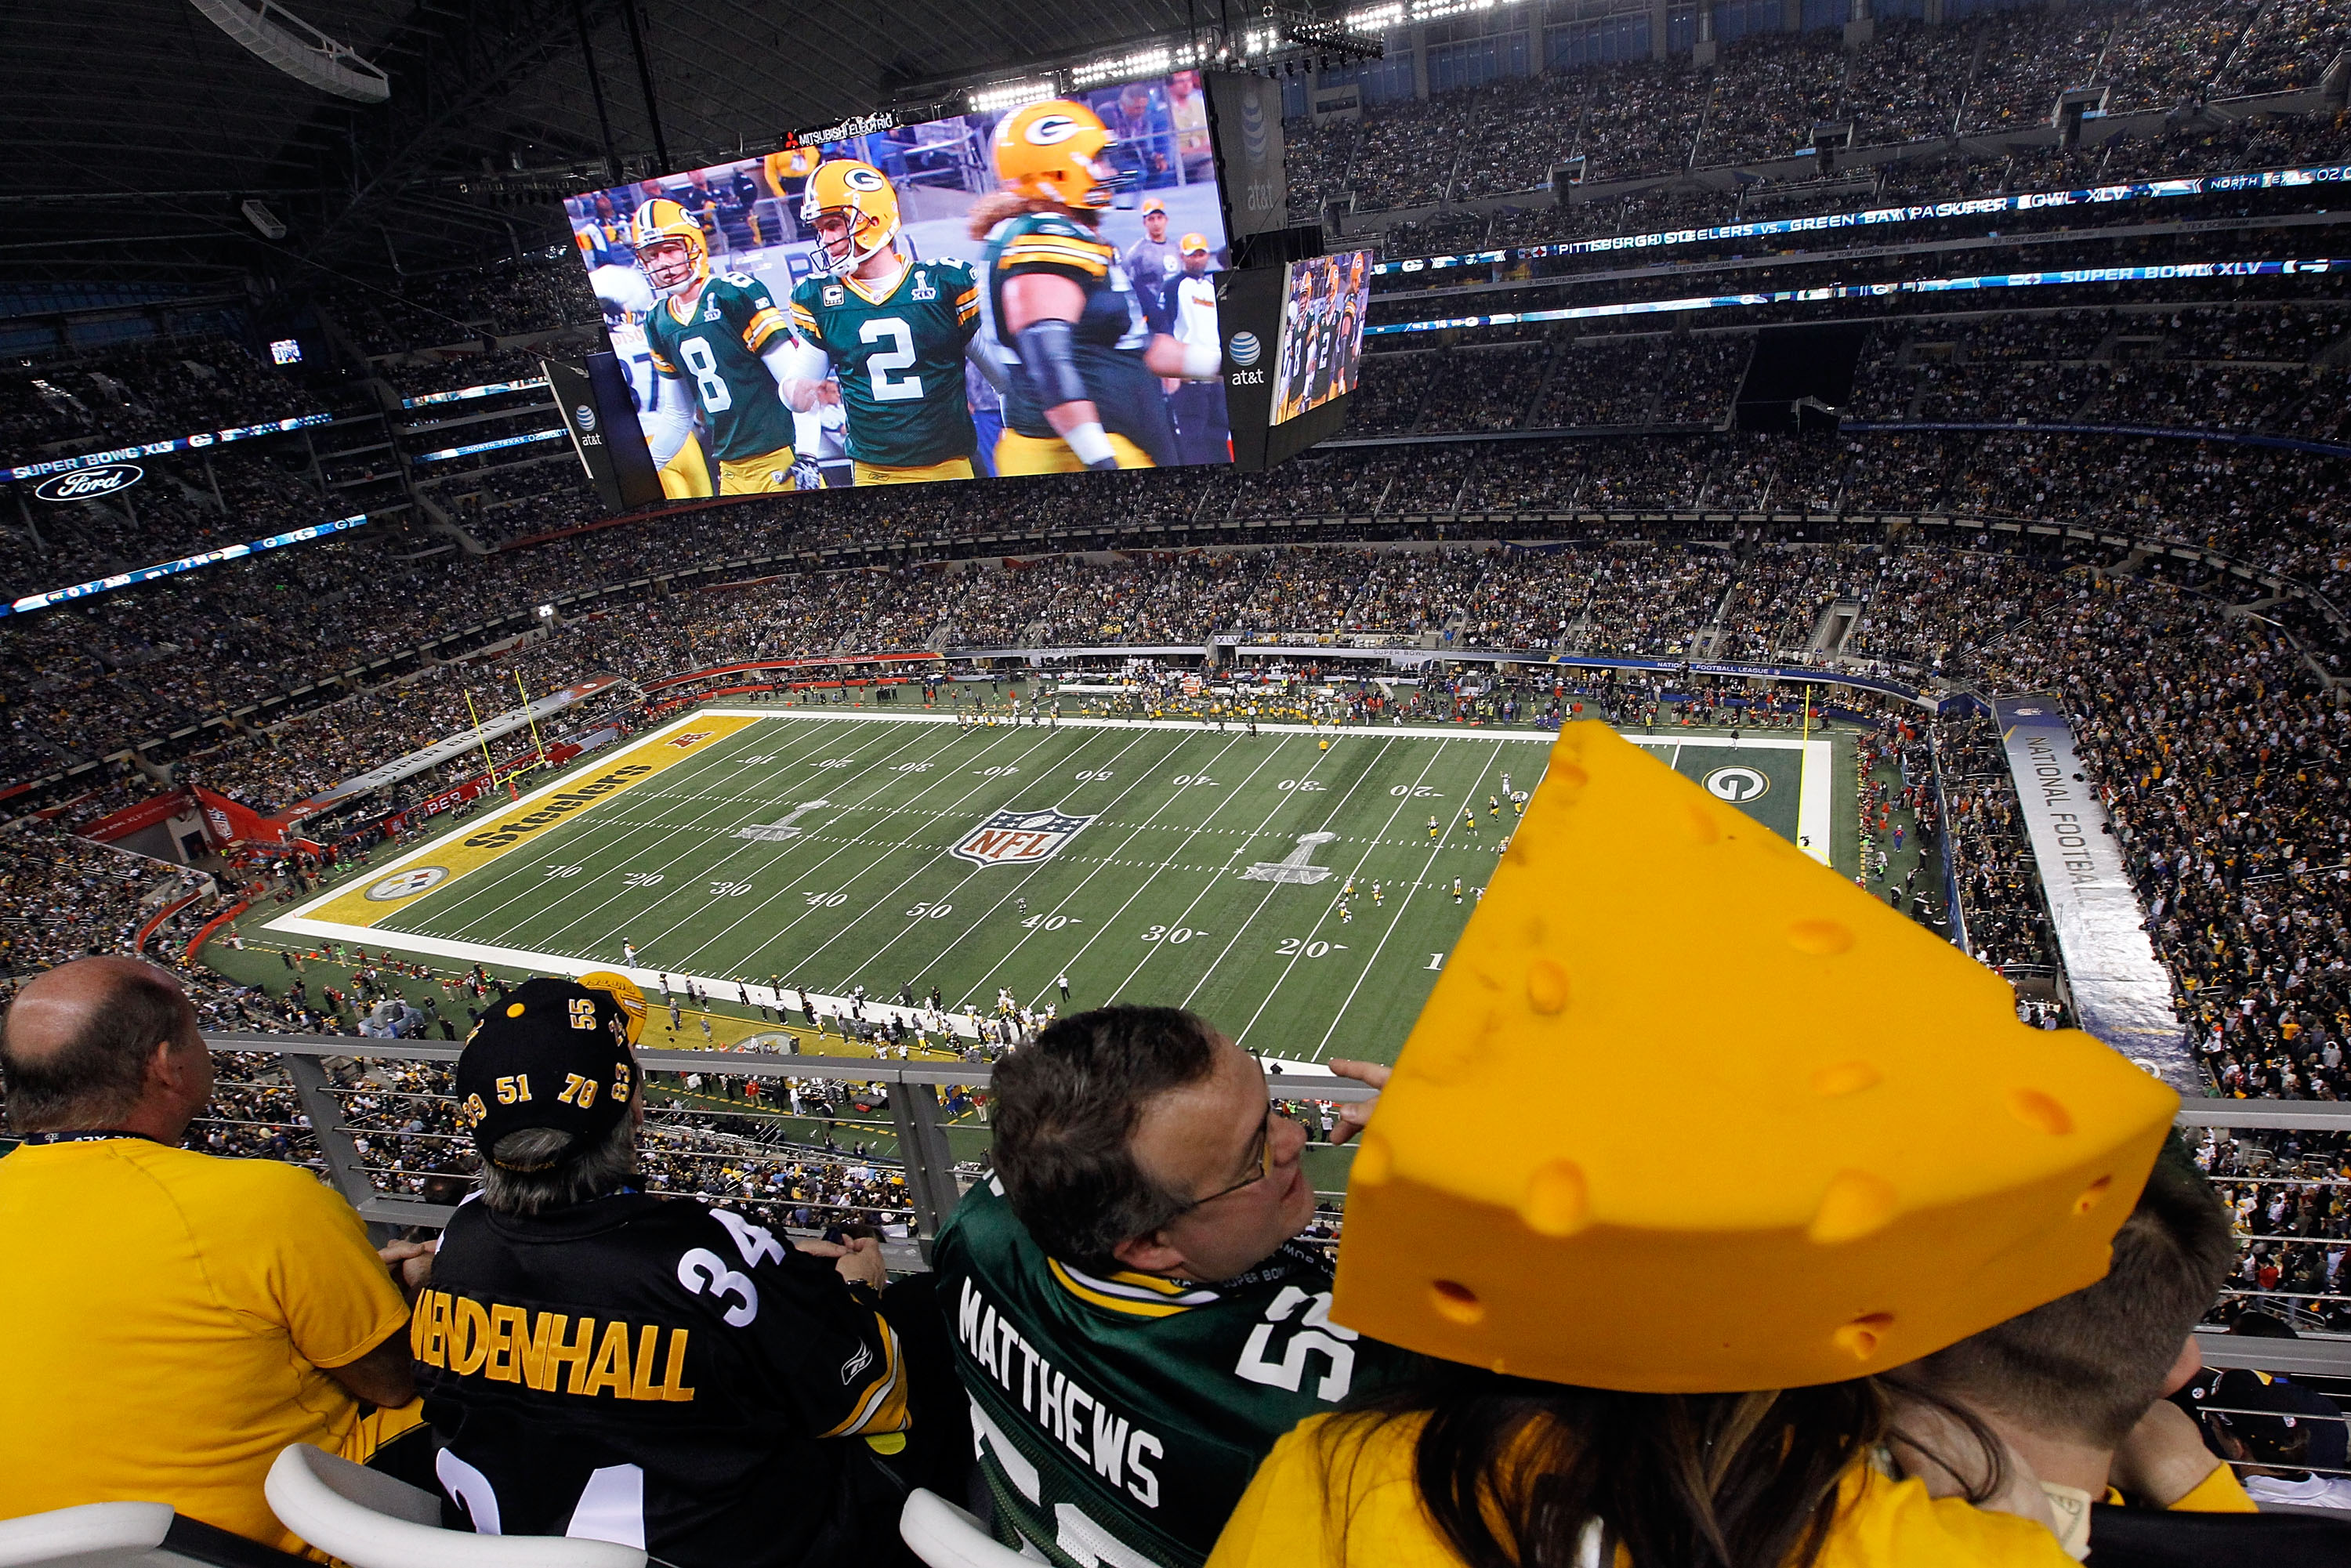 ARLINGTON, TX - FEBRUARY 06:  Fans watch the Green Bay Packers take on the Pittsburgh Steelers in Super Bowl XLV at Cowboys Stadium on February 6, 2011 in Arlington, Texas.  (Photo by Tom Pennington/Getty Images)